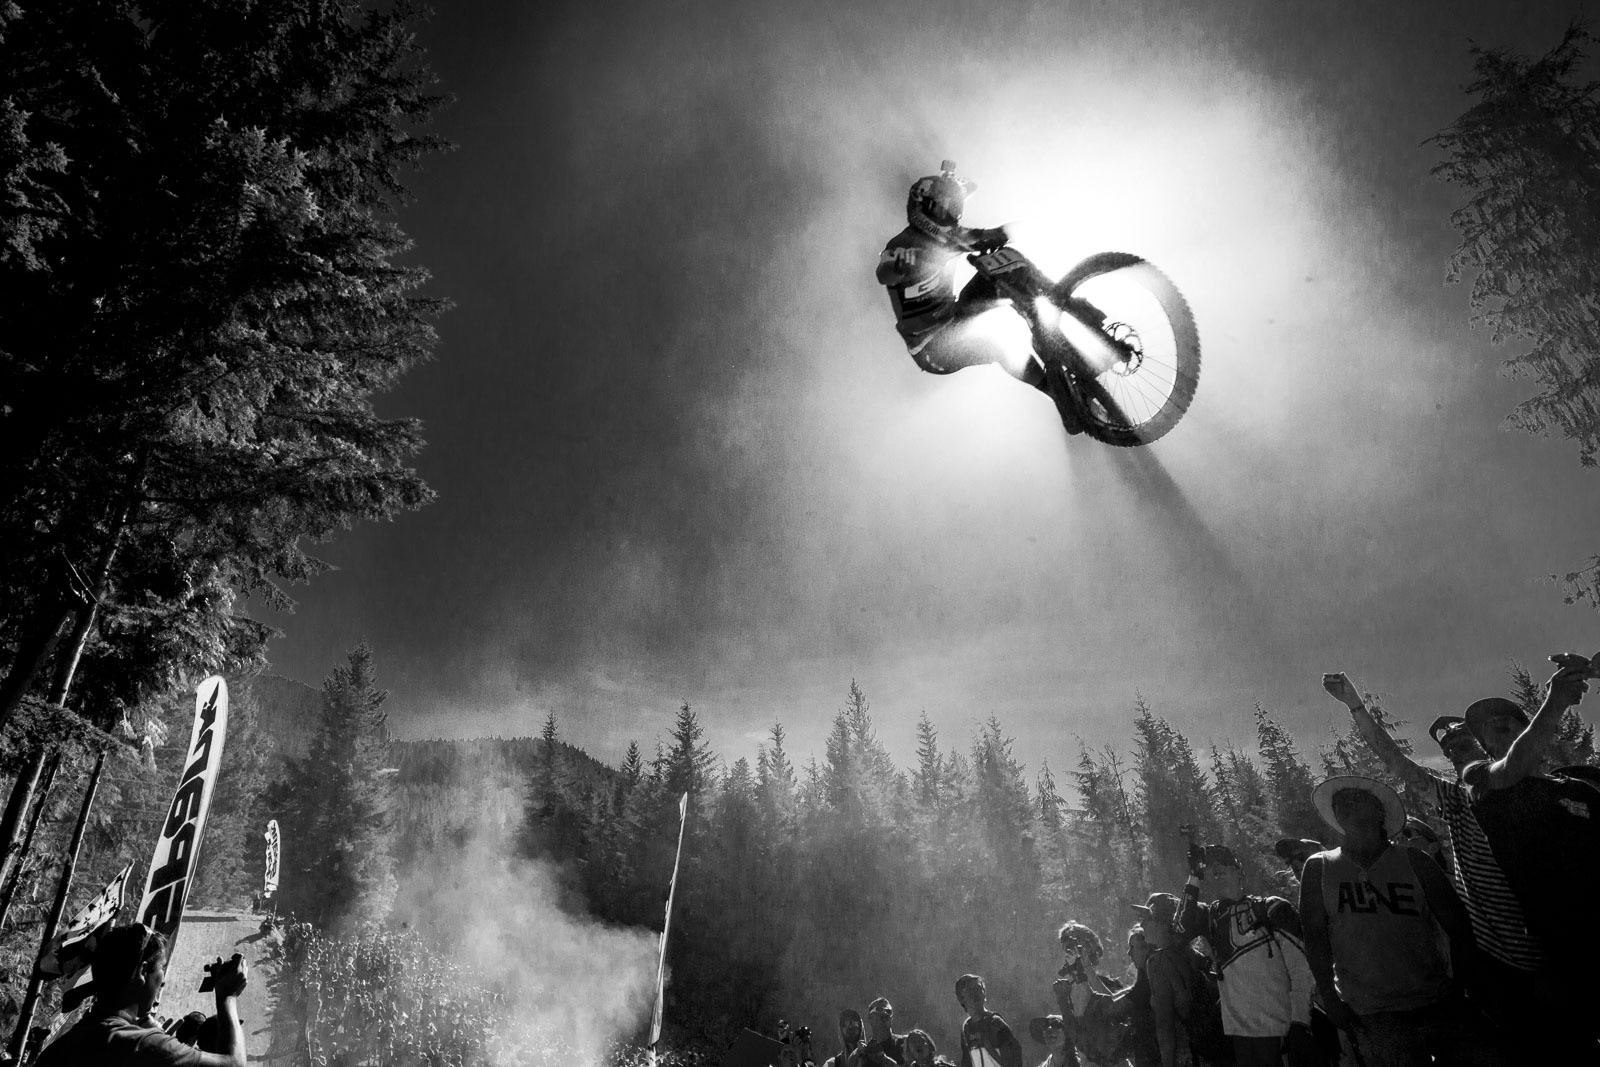 Art-Off World Champs Winner - Whip Off World Champs Photo Blast - Mountain Biking Pictures - Vital MTB